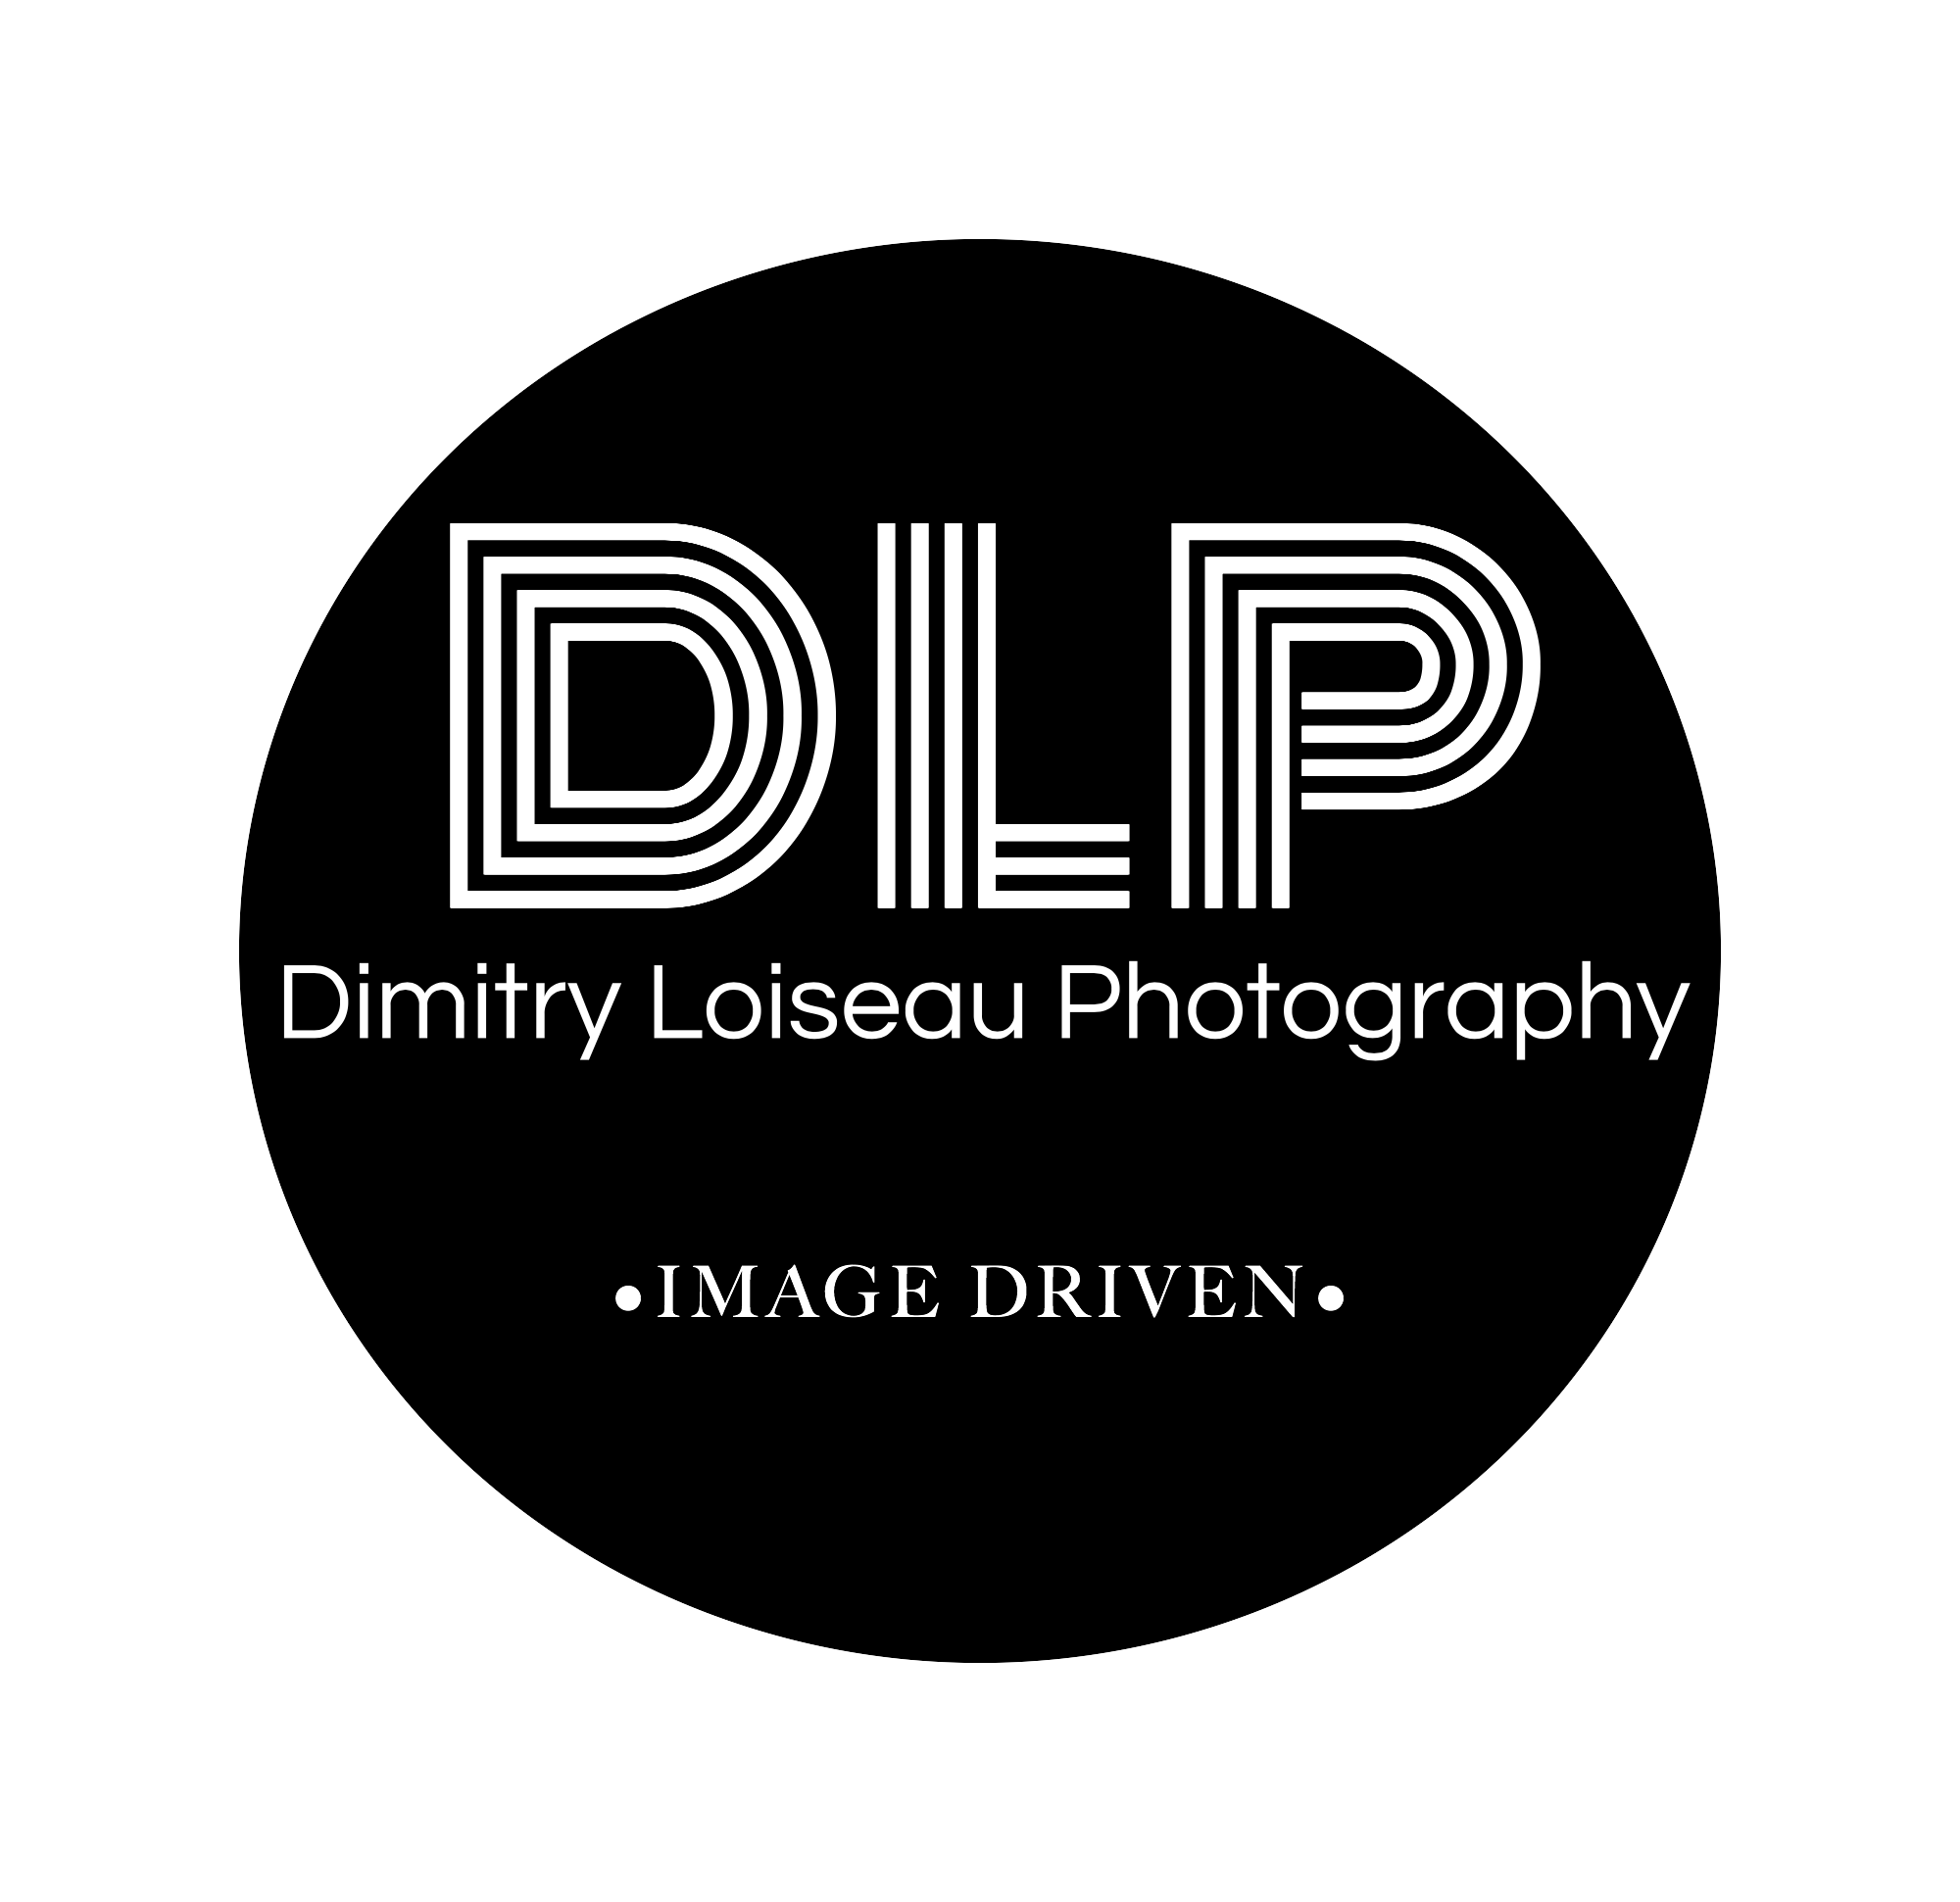 Dimitry Loiseau Photography